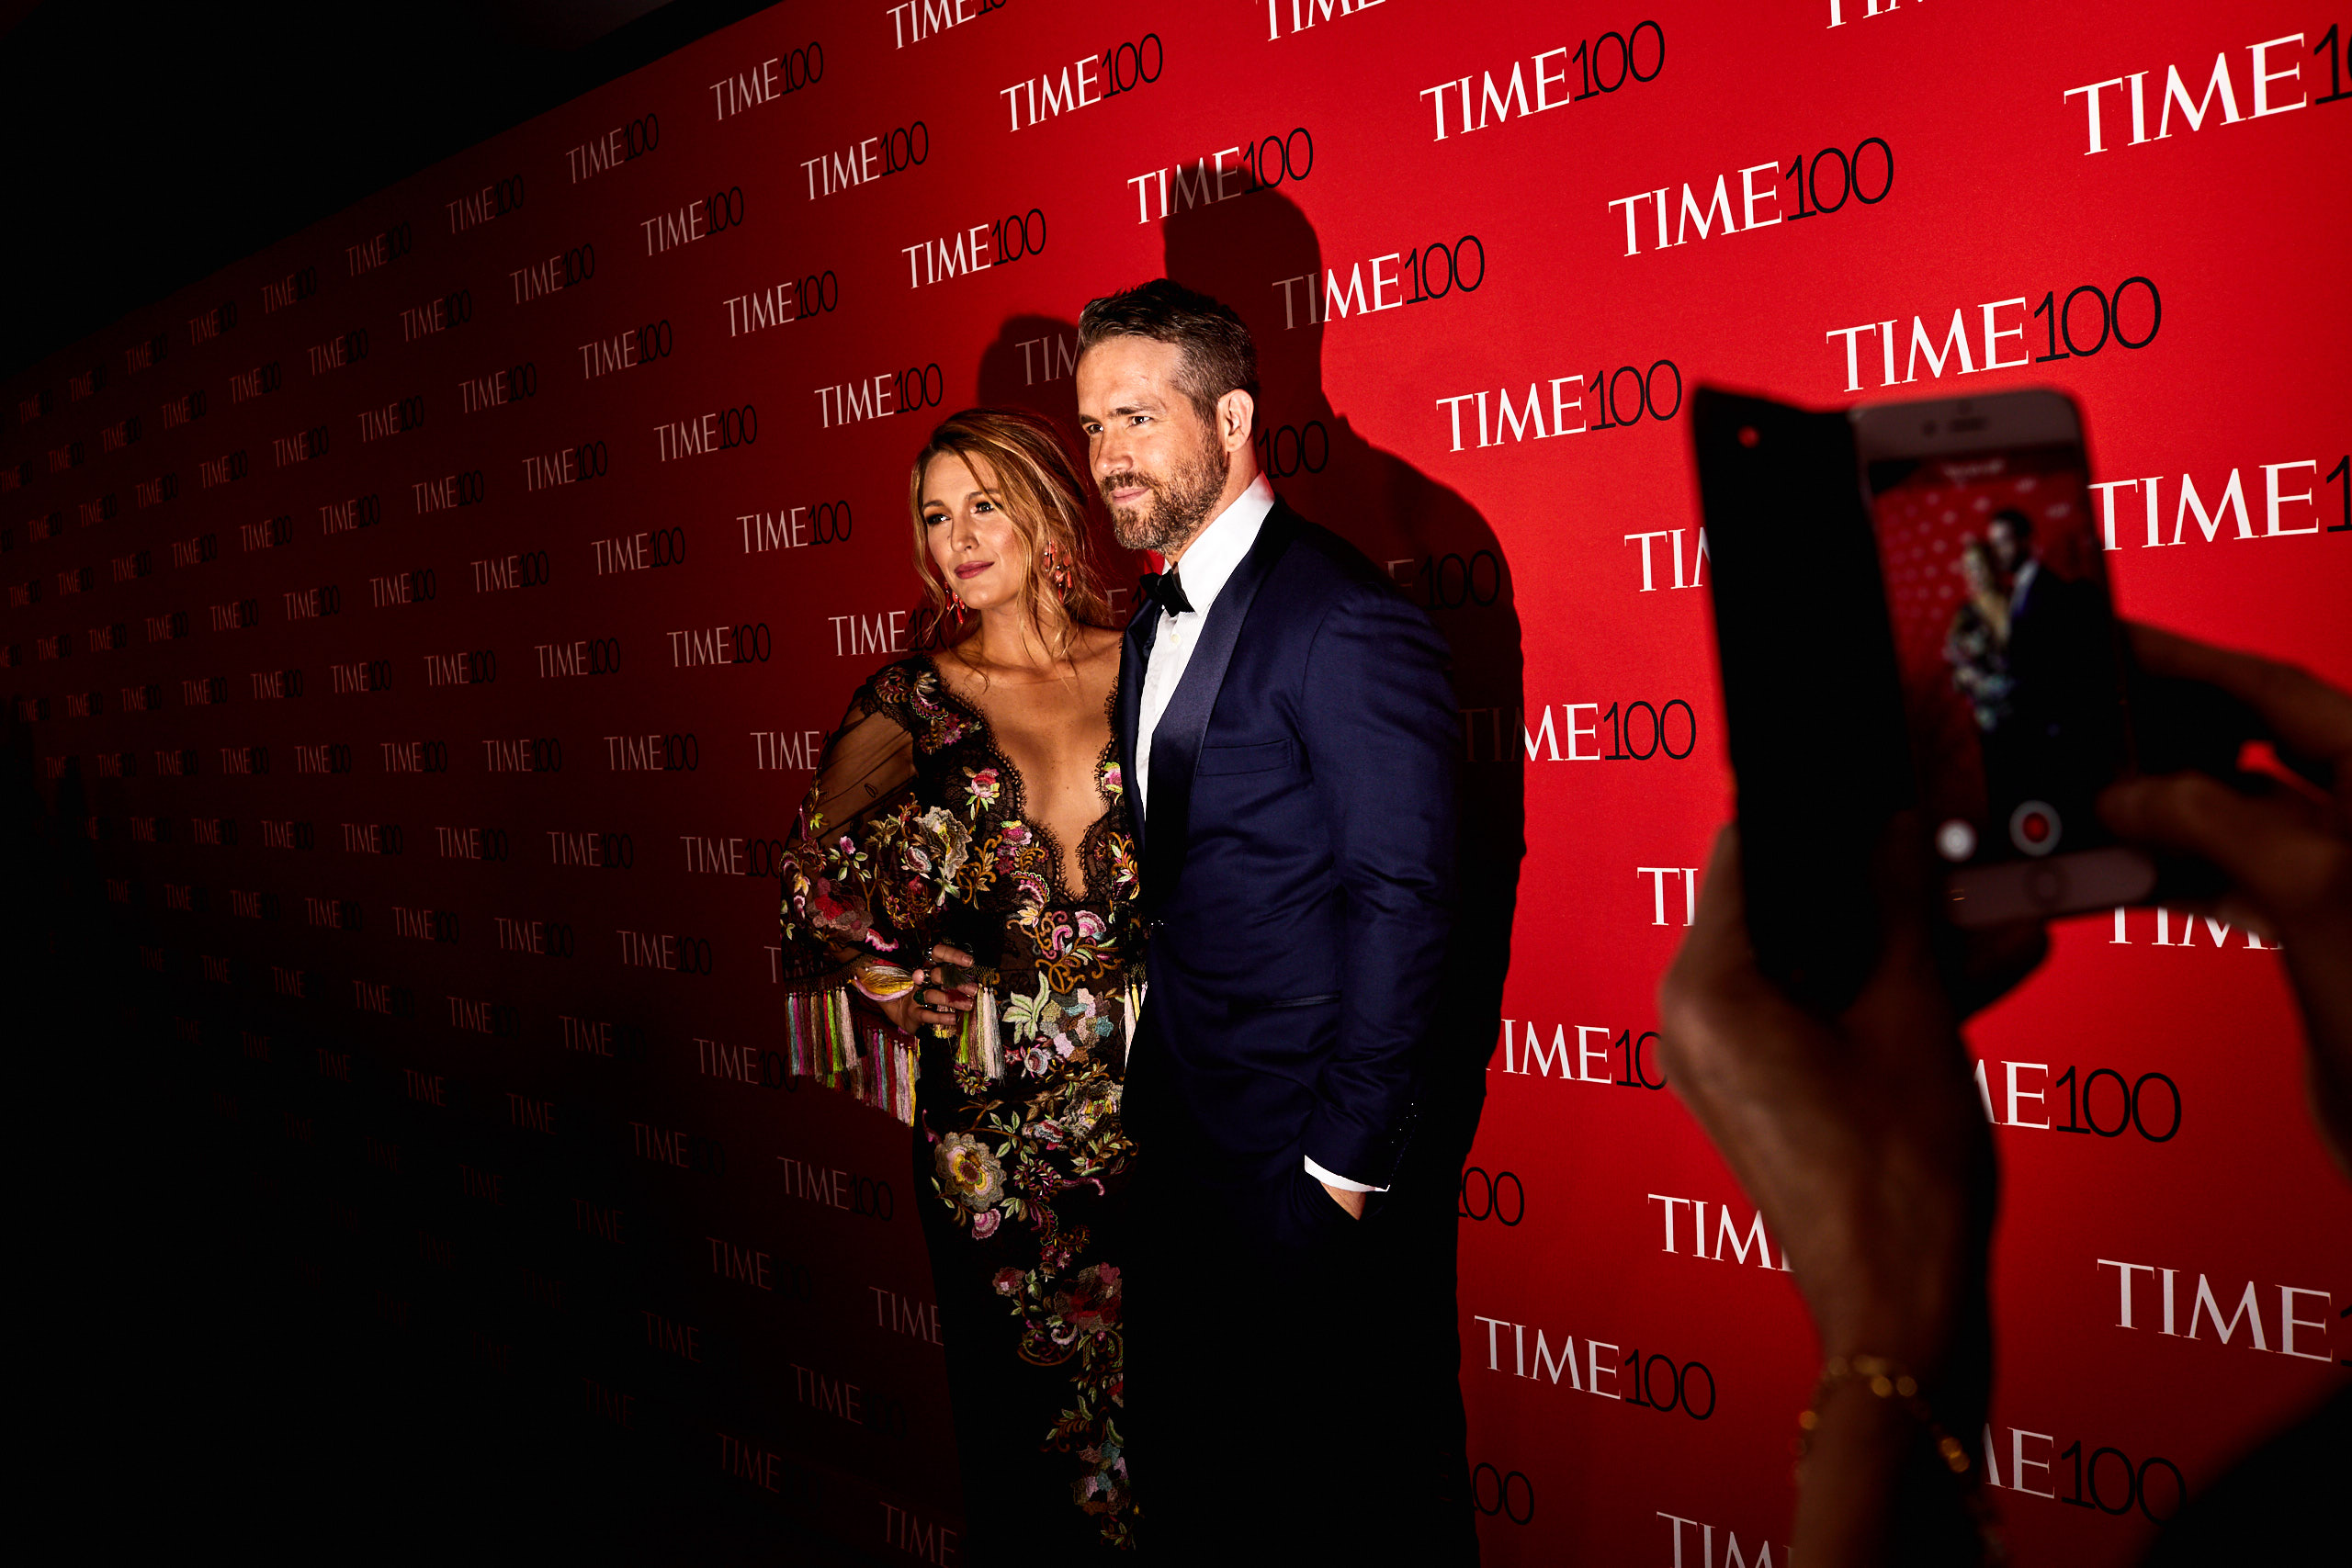 Blake Lively and Ryan Reynolds being photographed by Ryan Reynold's mother at the Time 100 Gala at Jazz at Lincoln Center on April 25, 2017 in New York City.